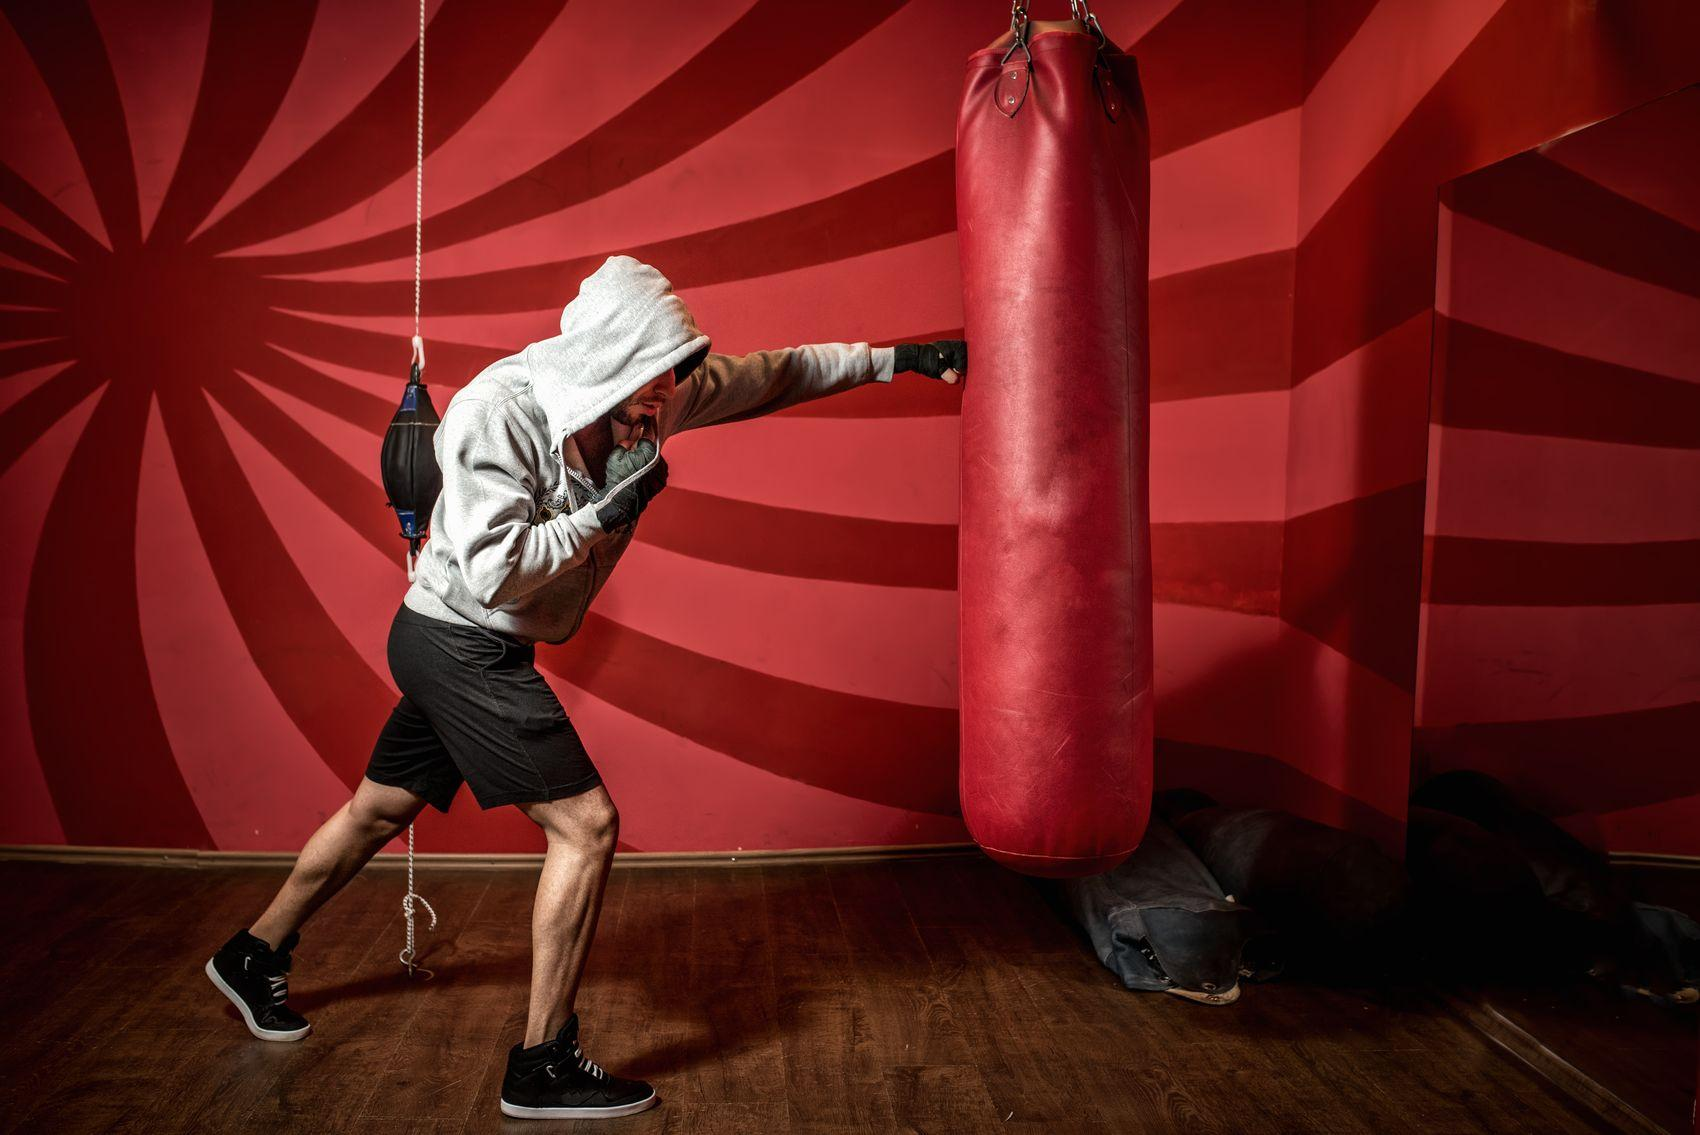 kickboxing workout